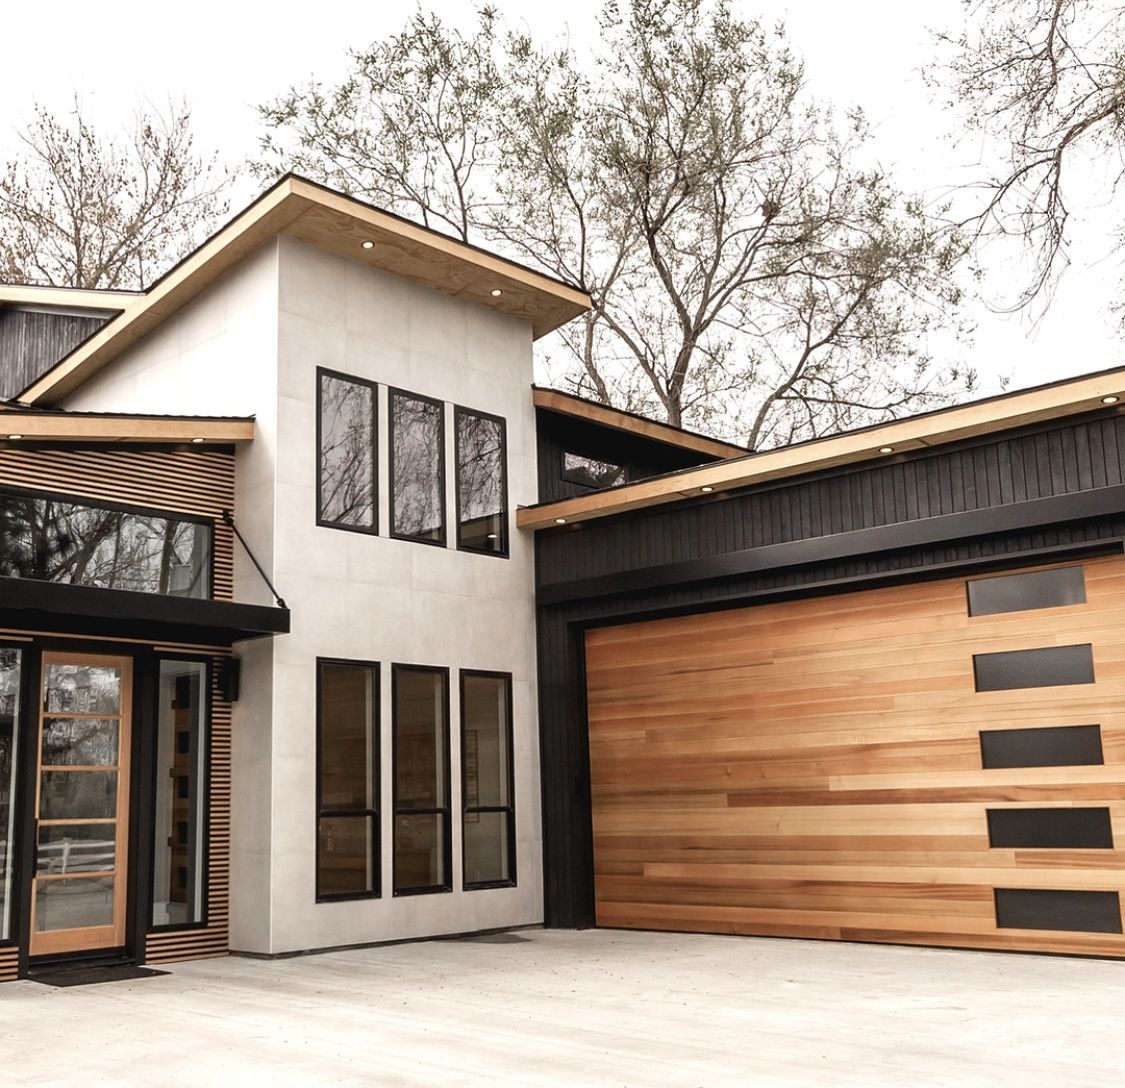 Role Of Garage Door In Garage Design: A Mid Century Modern Garage Door Brings Contemporary Style